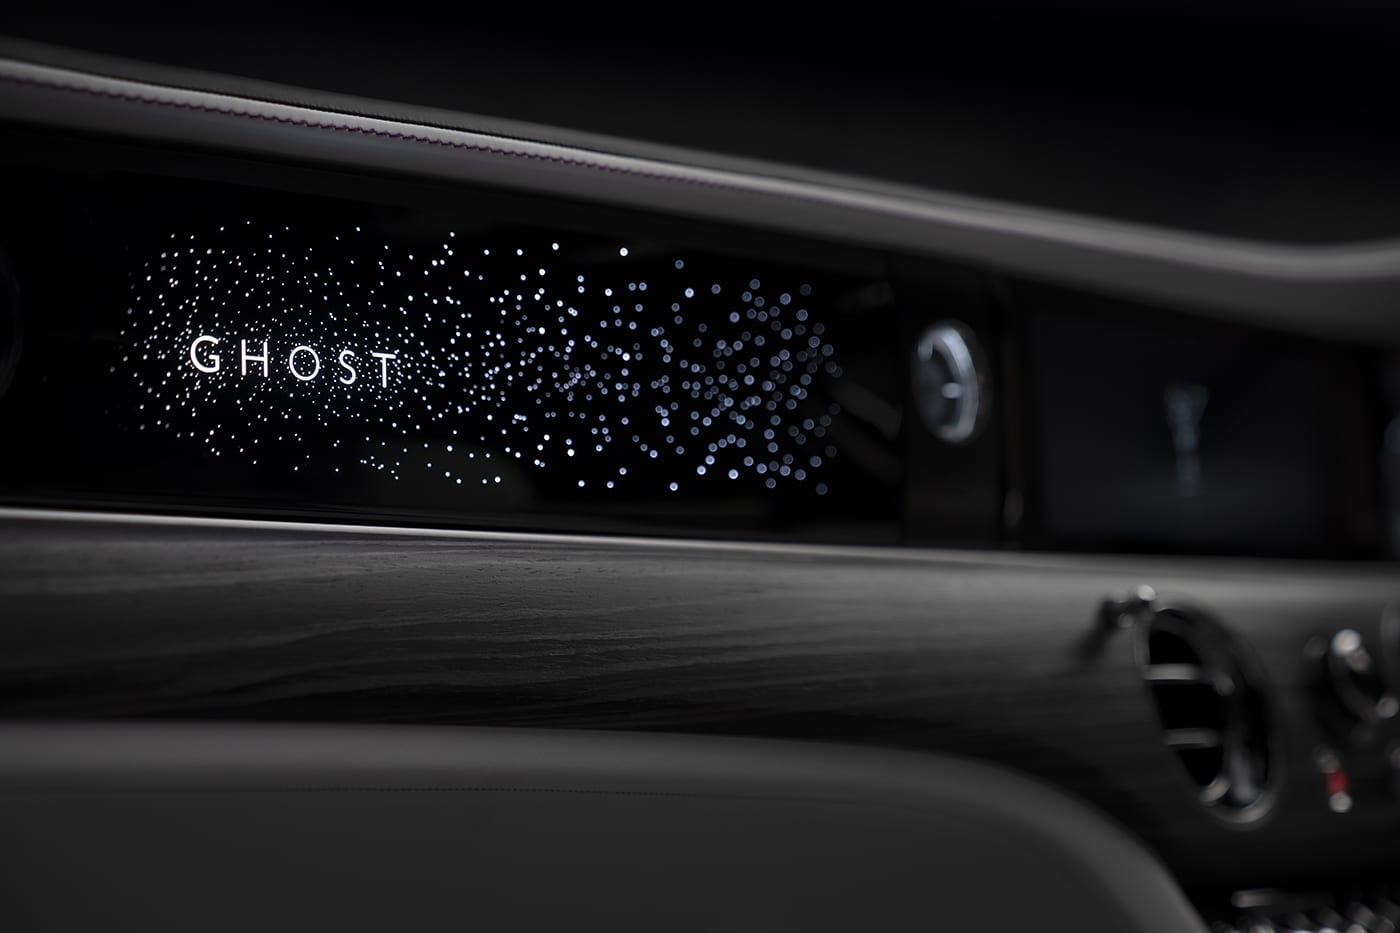 New Illuminated Fascia Coming To 2021 Rolls Royce Ghost